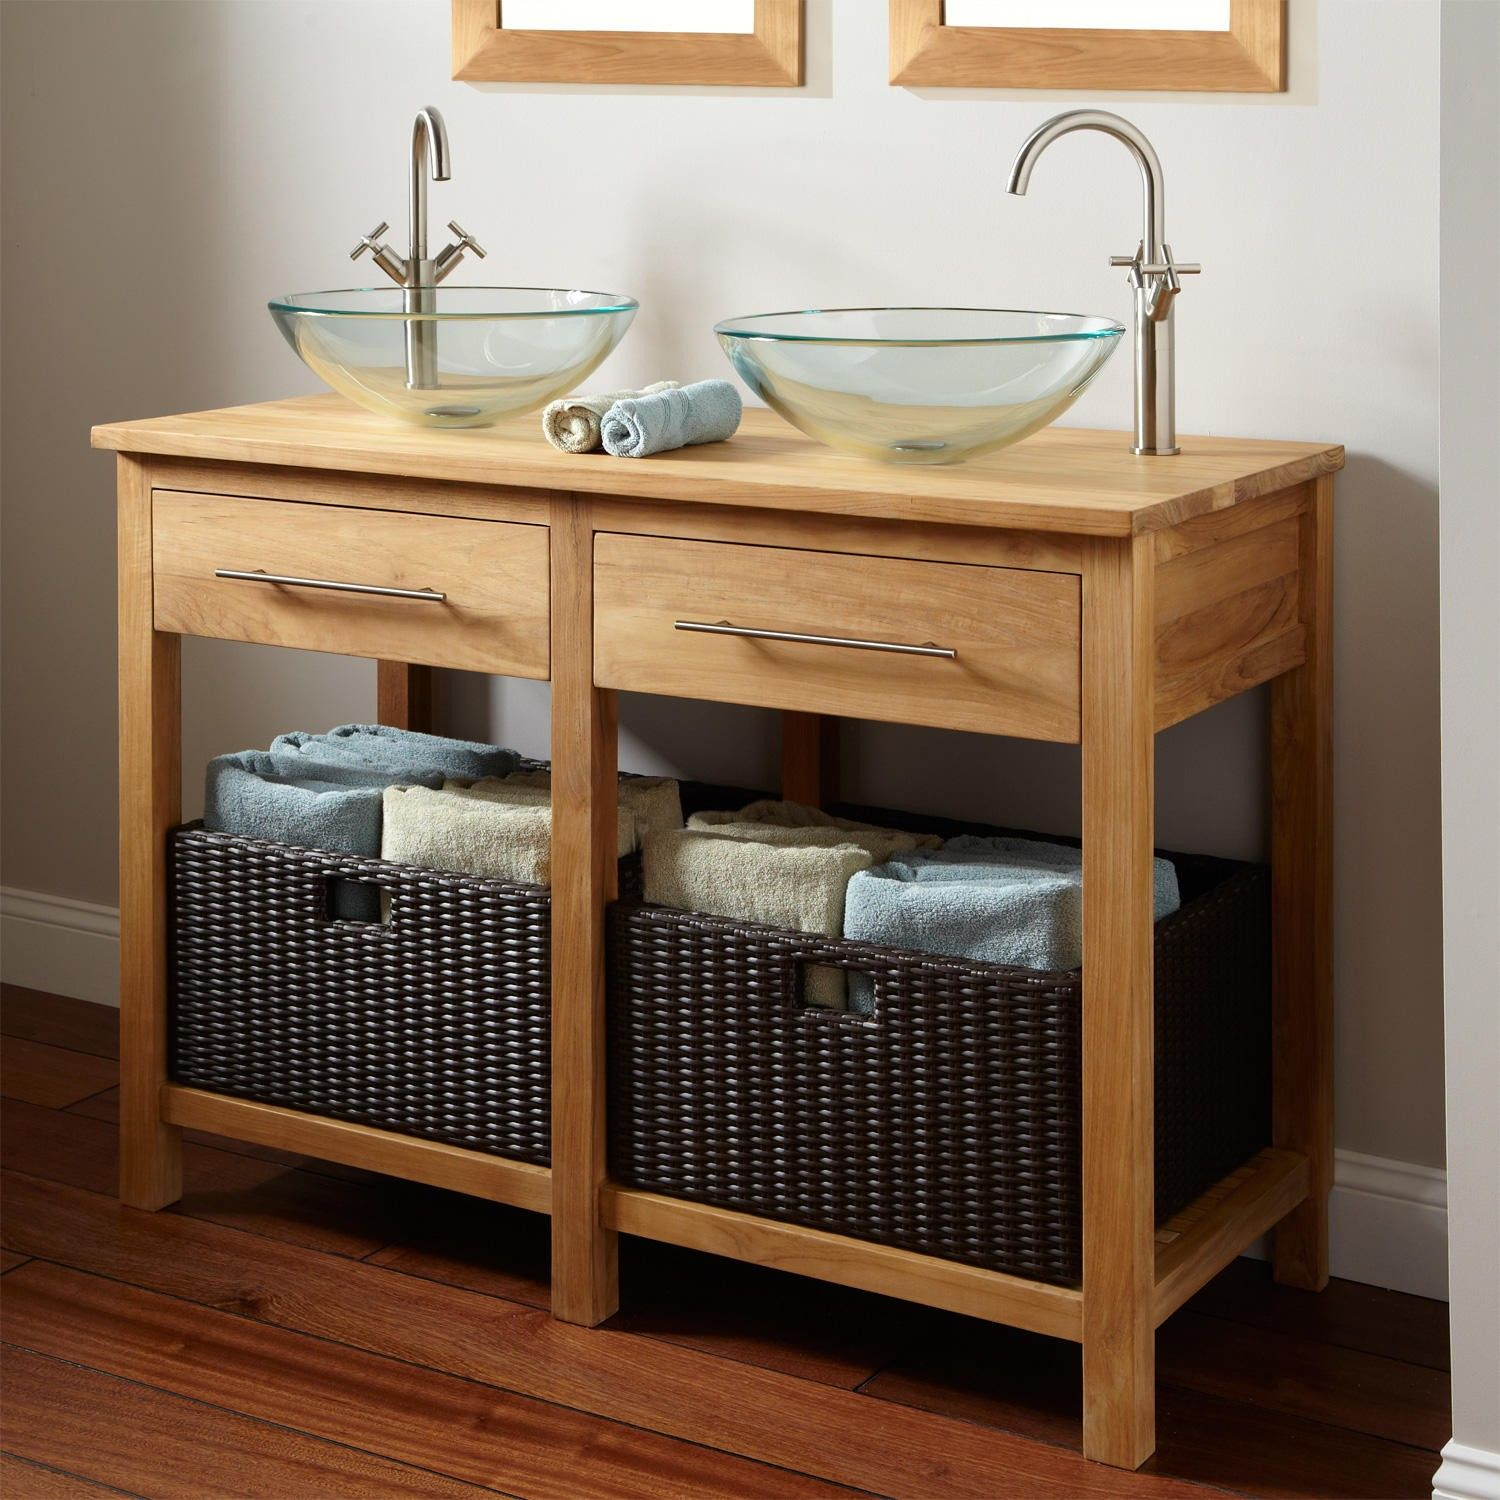 48 Sylmar Teak Double Vessel Sink Console Vanity Diy Bathroom Vanity Rustic Bathroom Vanities Small Bathroom Vanities